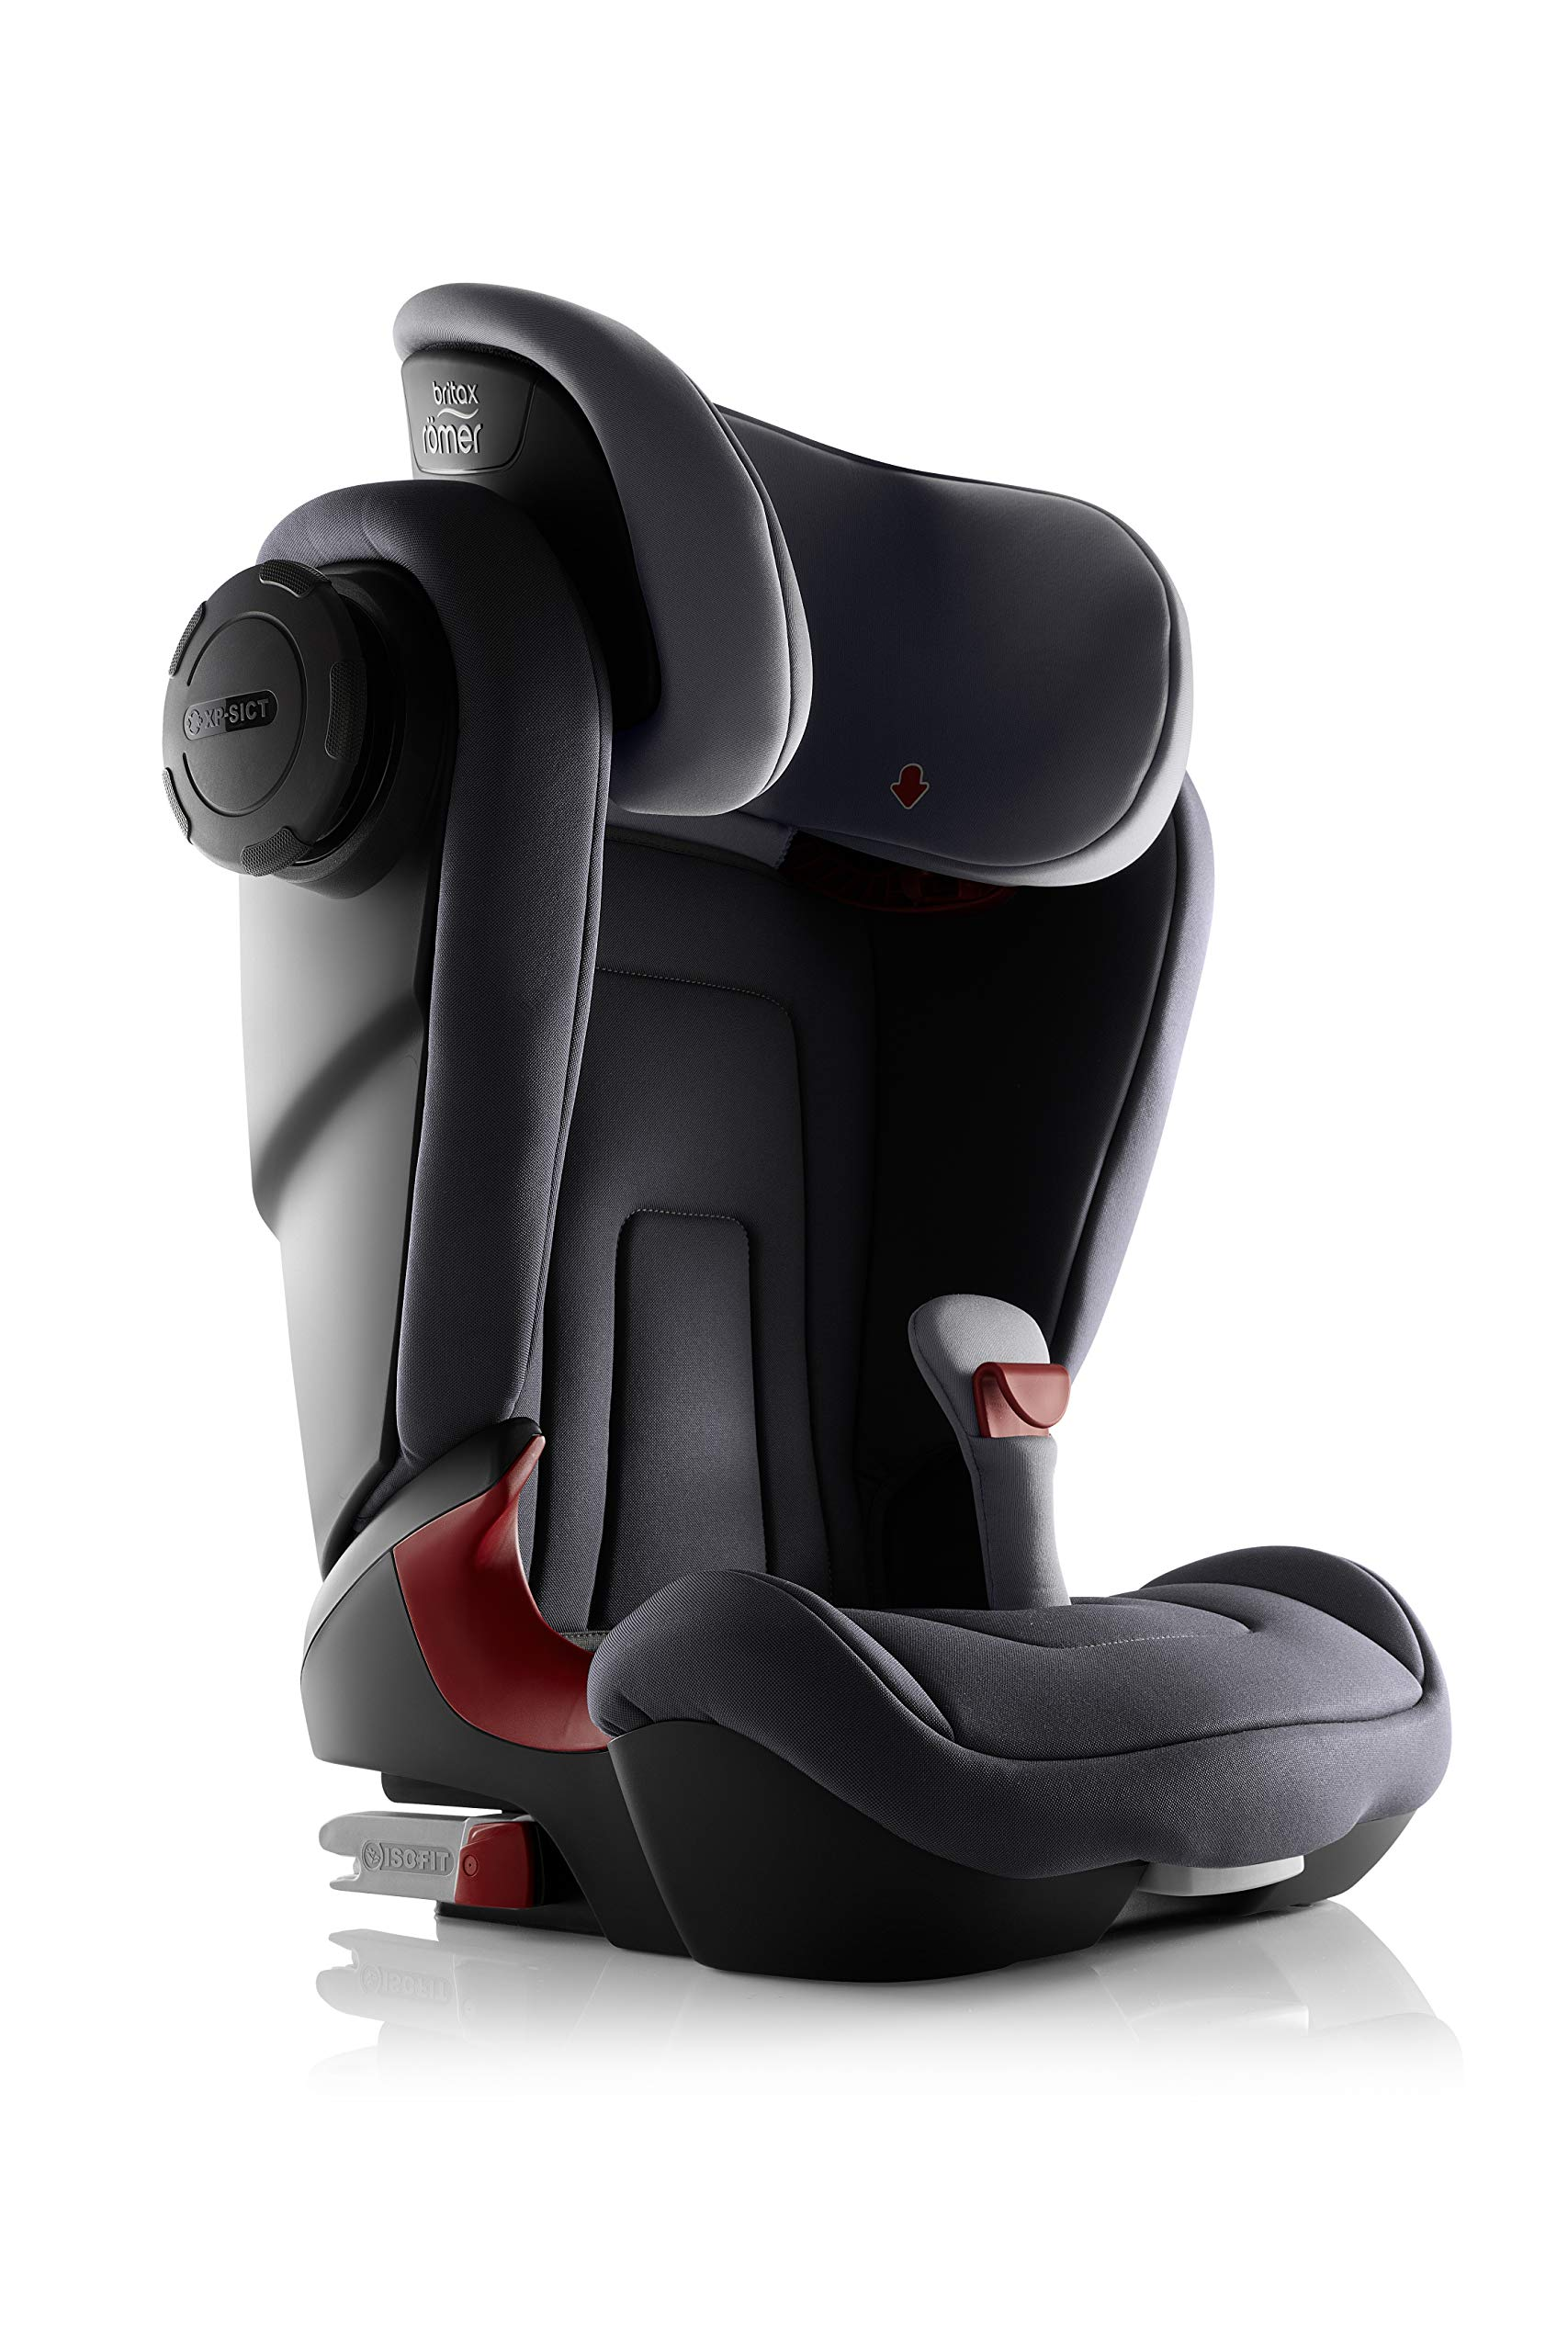 Britax Römer KIDFIX² S Group 2-3 (15-36kg) Car Seat - Storm Grey  Advanced side impact protection - sict offers superior protection to your child in the event of a side collision. reducing impact forces by minimising the distance between the car and the car seat. Secure guard - helps to protect your child's delicate abdominal area by adding an extra - a 4th - contact point to the 3-point seat belt. High back booster - protects your child in 3 ways: provides head to hip protection; belt guides provide correct positioning of the seat belt and the padded headrest provides safety and comfort. 4